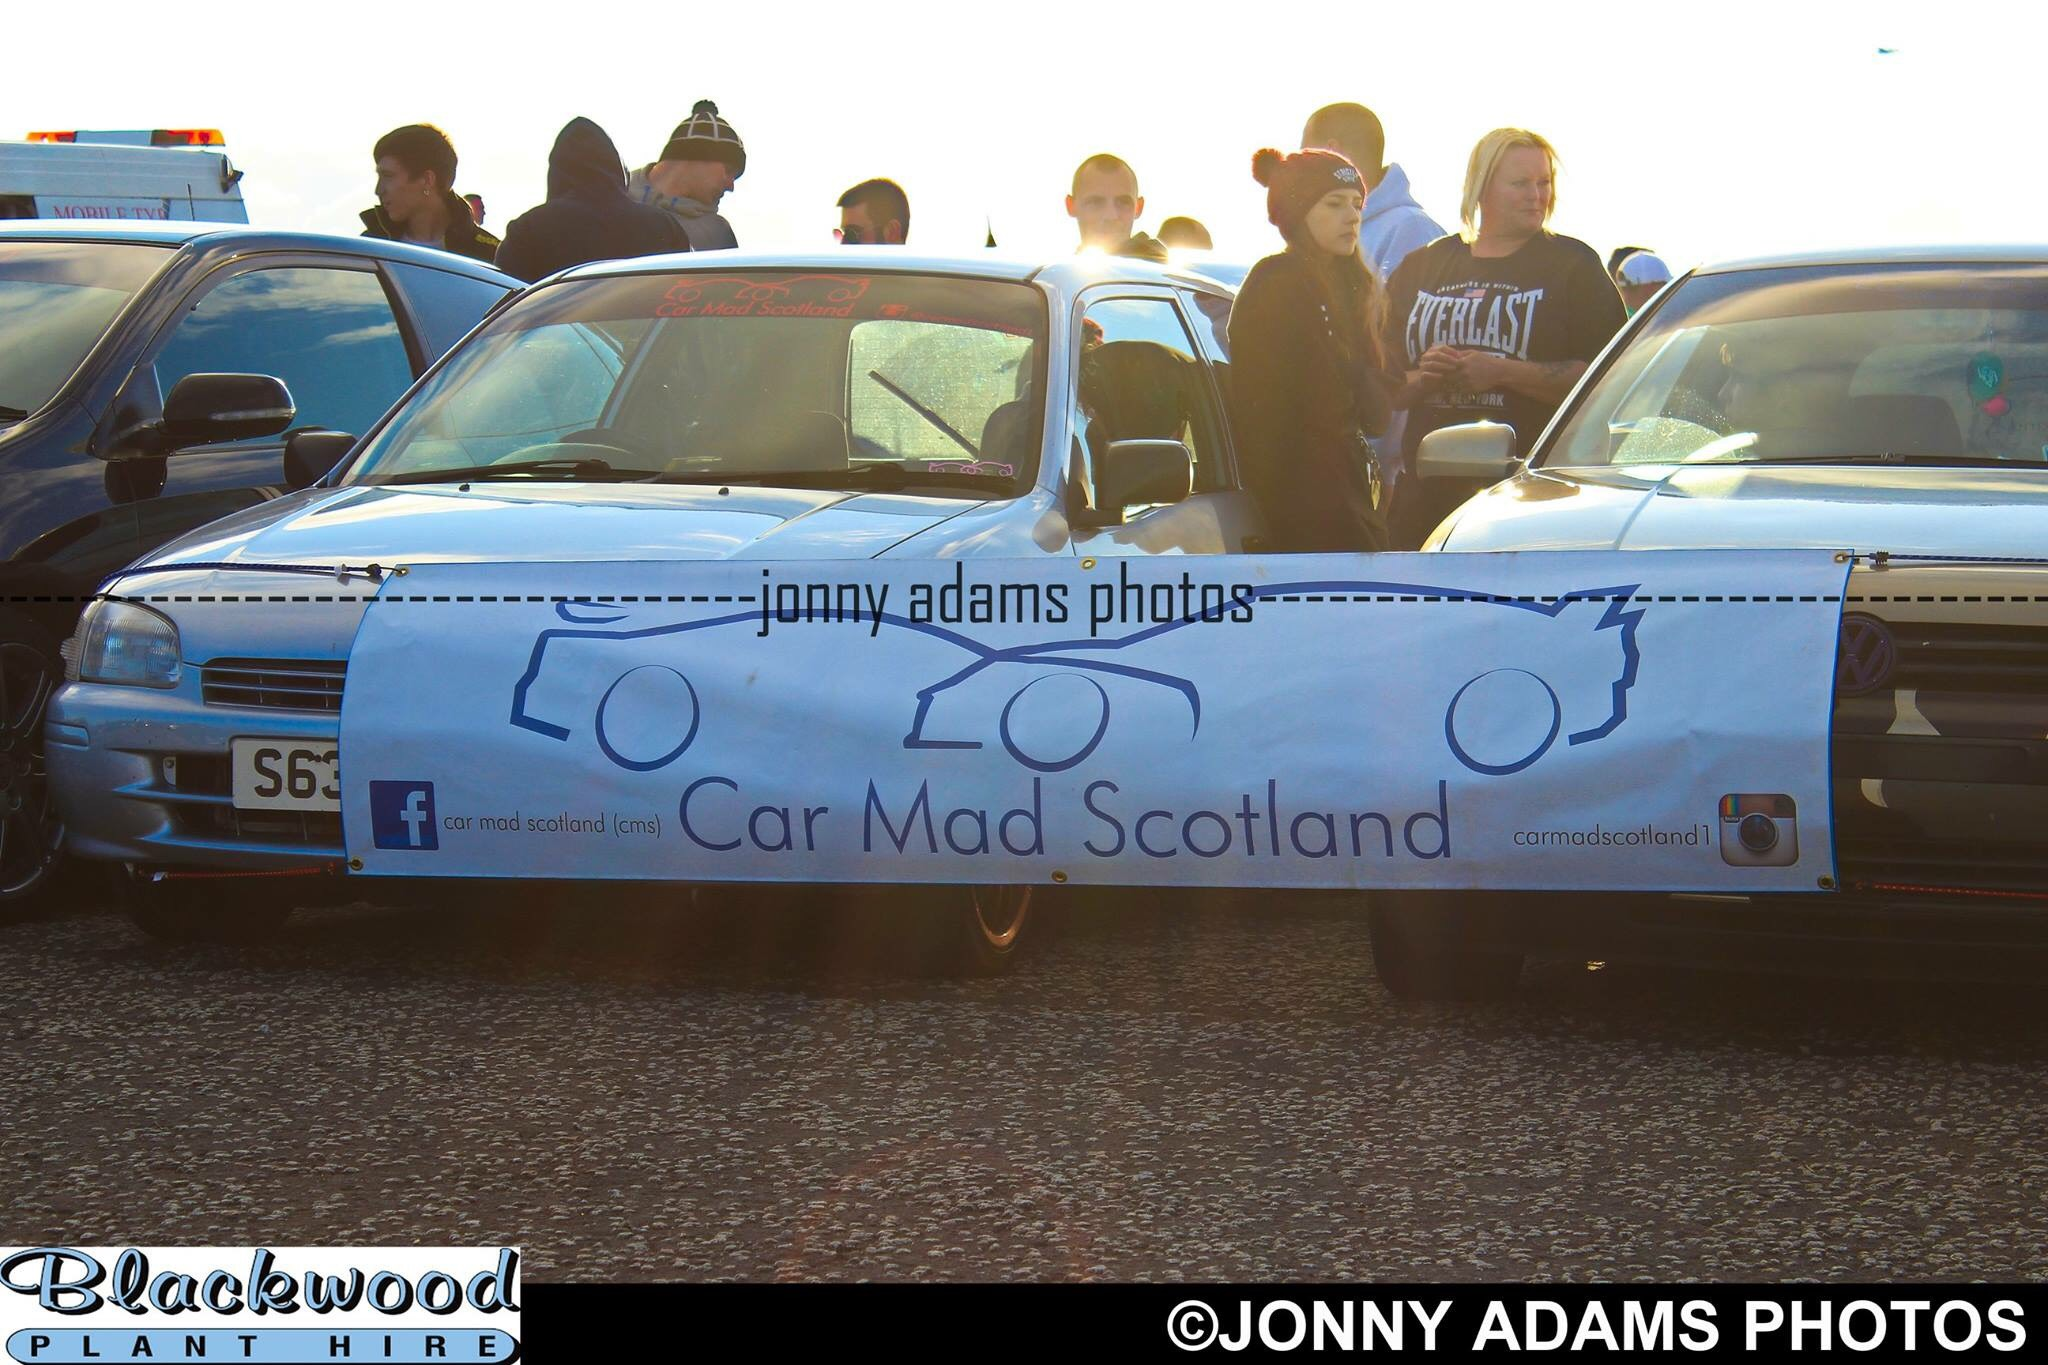 Little Scarlet Became A Banner Car At Irvine Cruise P S Follow My Car Clubs Twitter For More Photos And Other Cars And Meet To Do With The Club Carmadscotland2